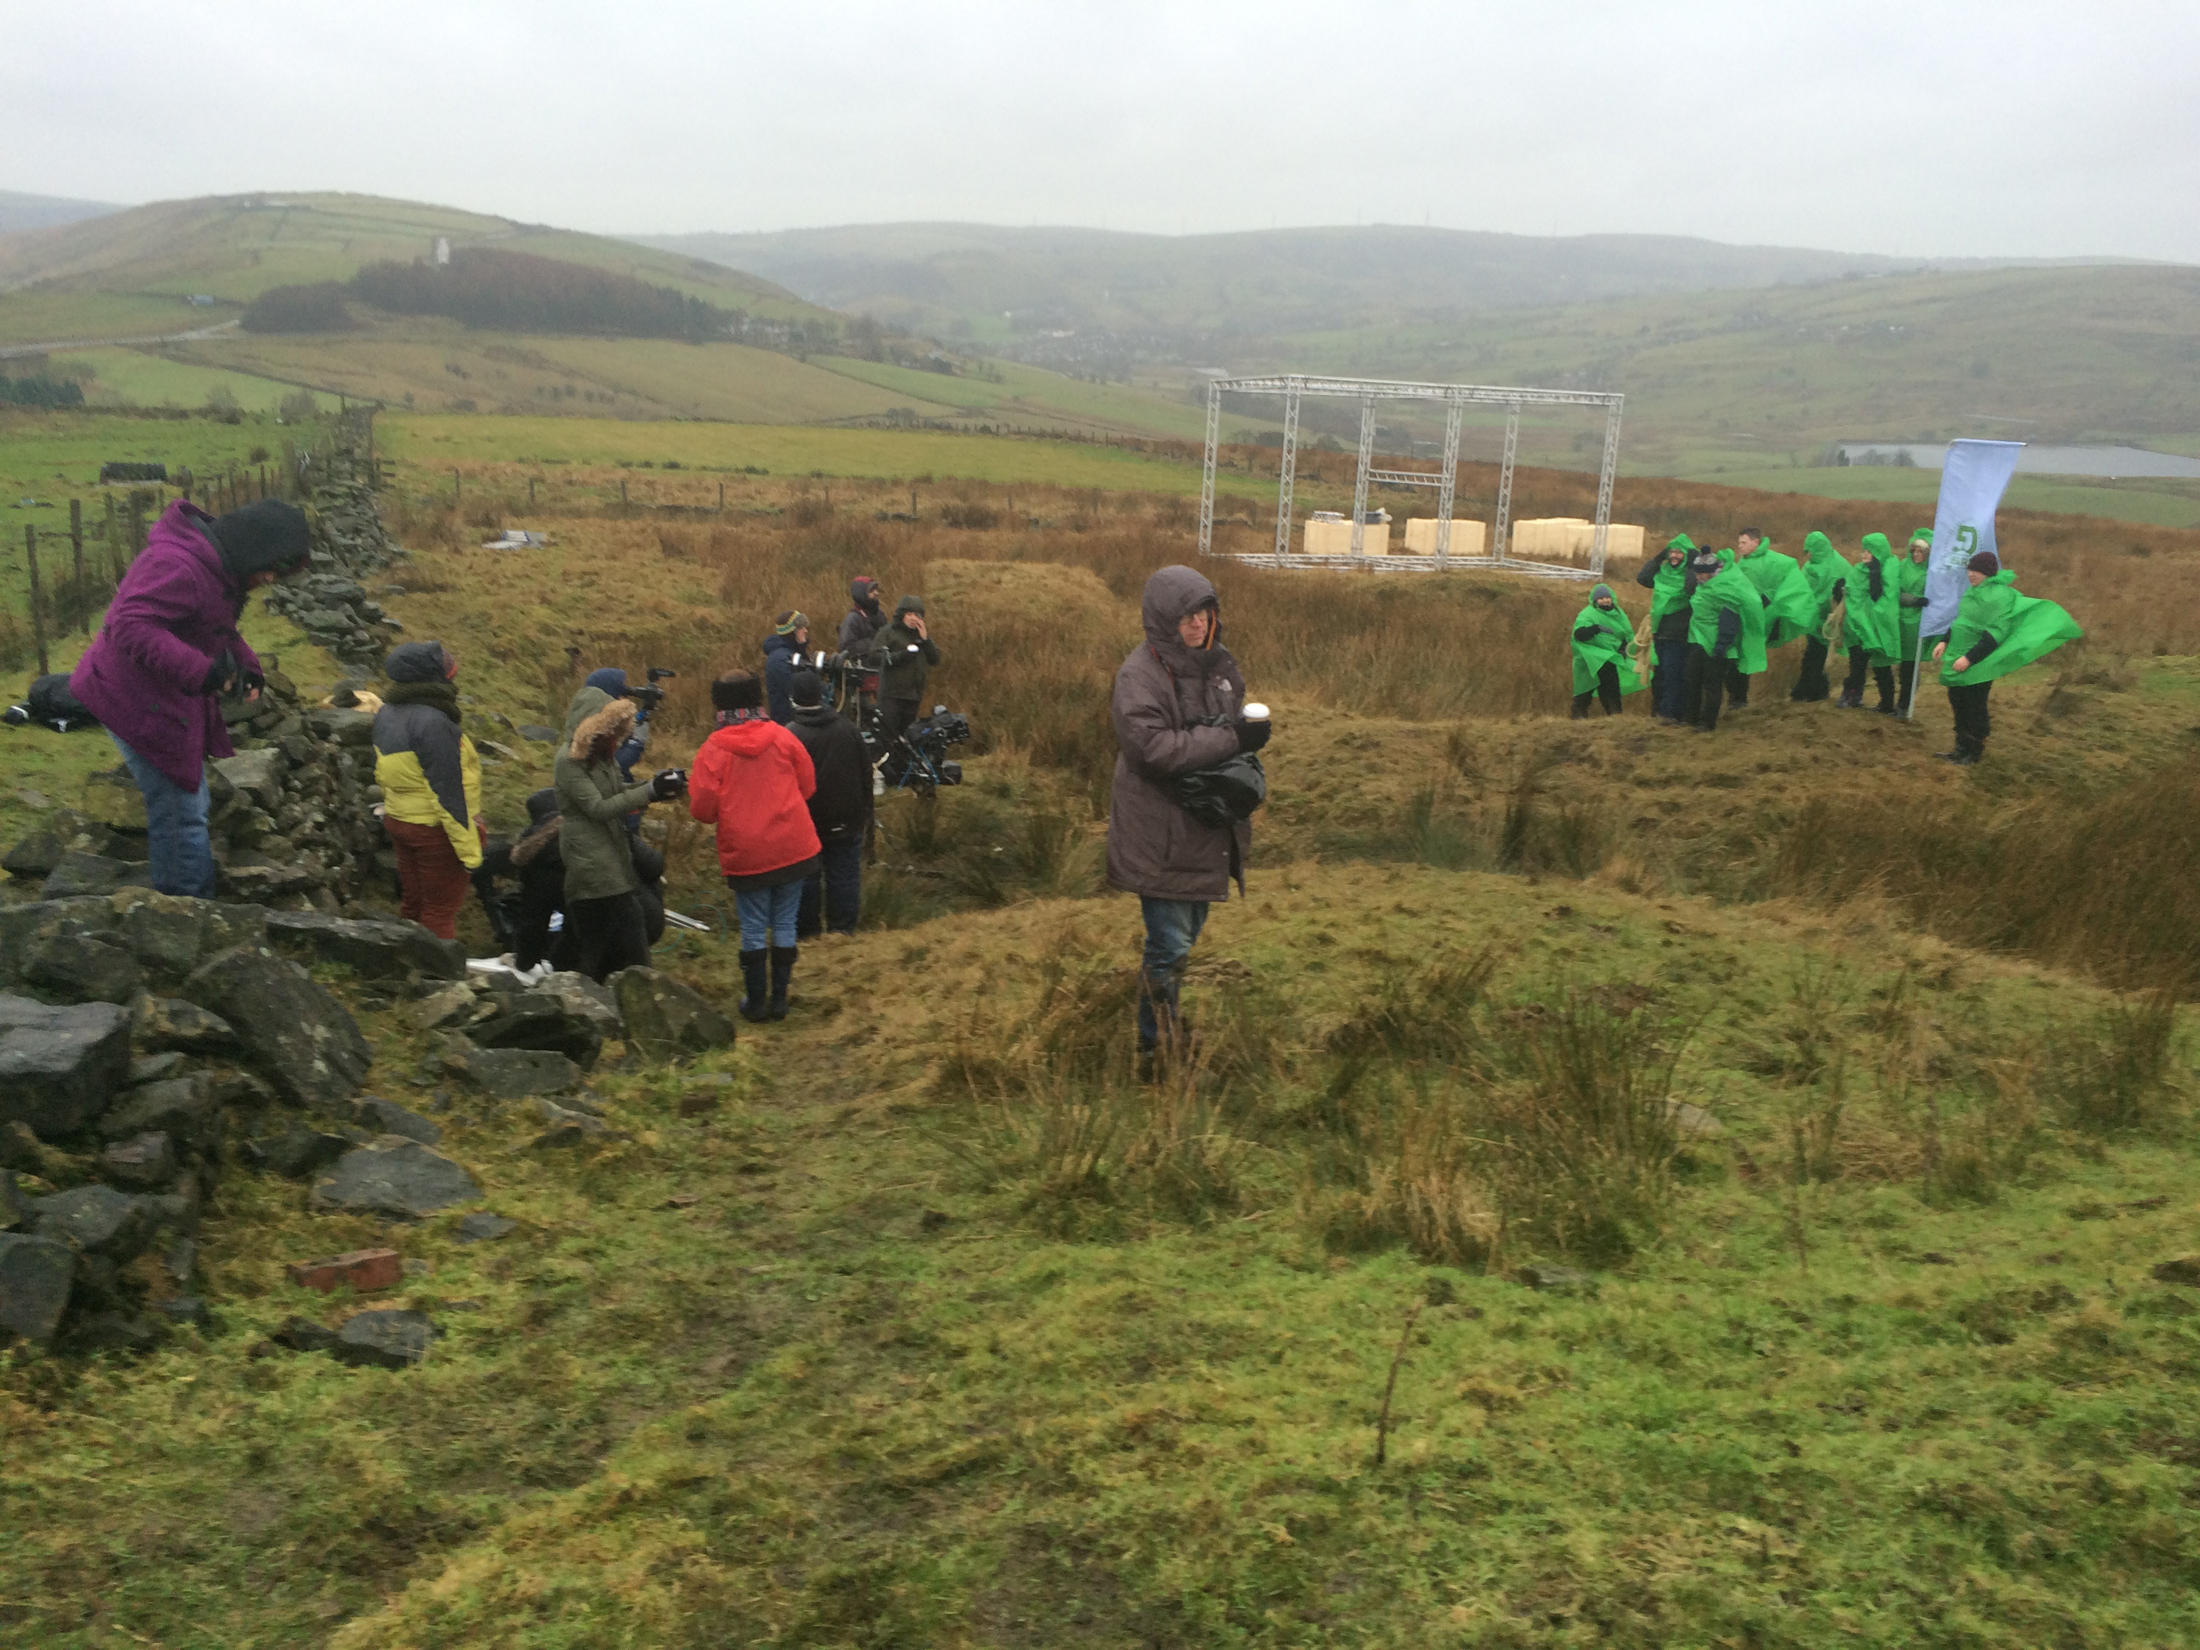 07/01/15 - Waiting for the film crew, as usual - Saddleworth Moor. -